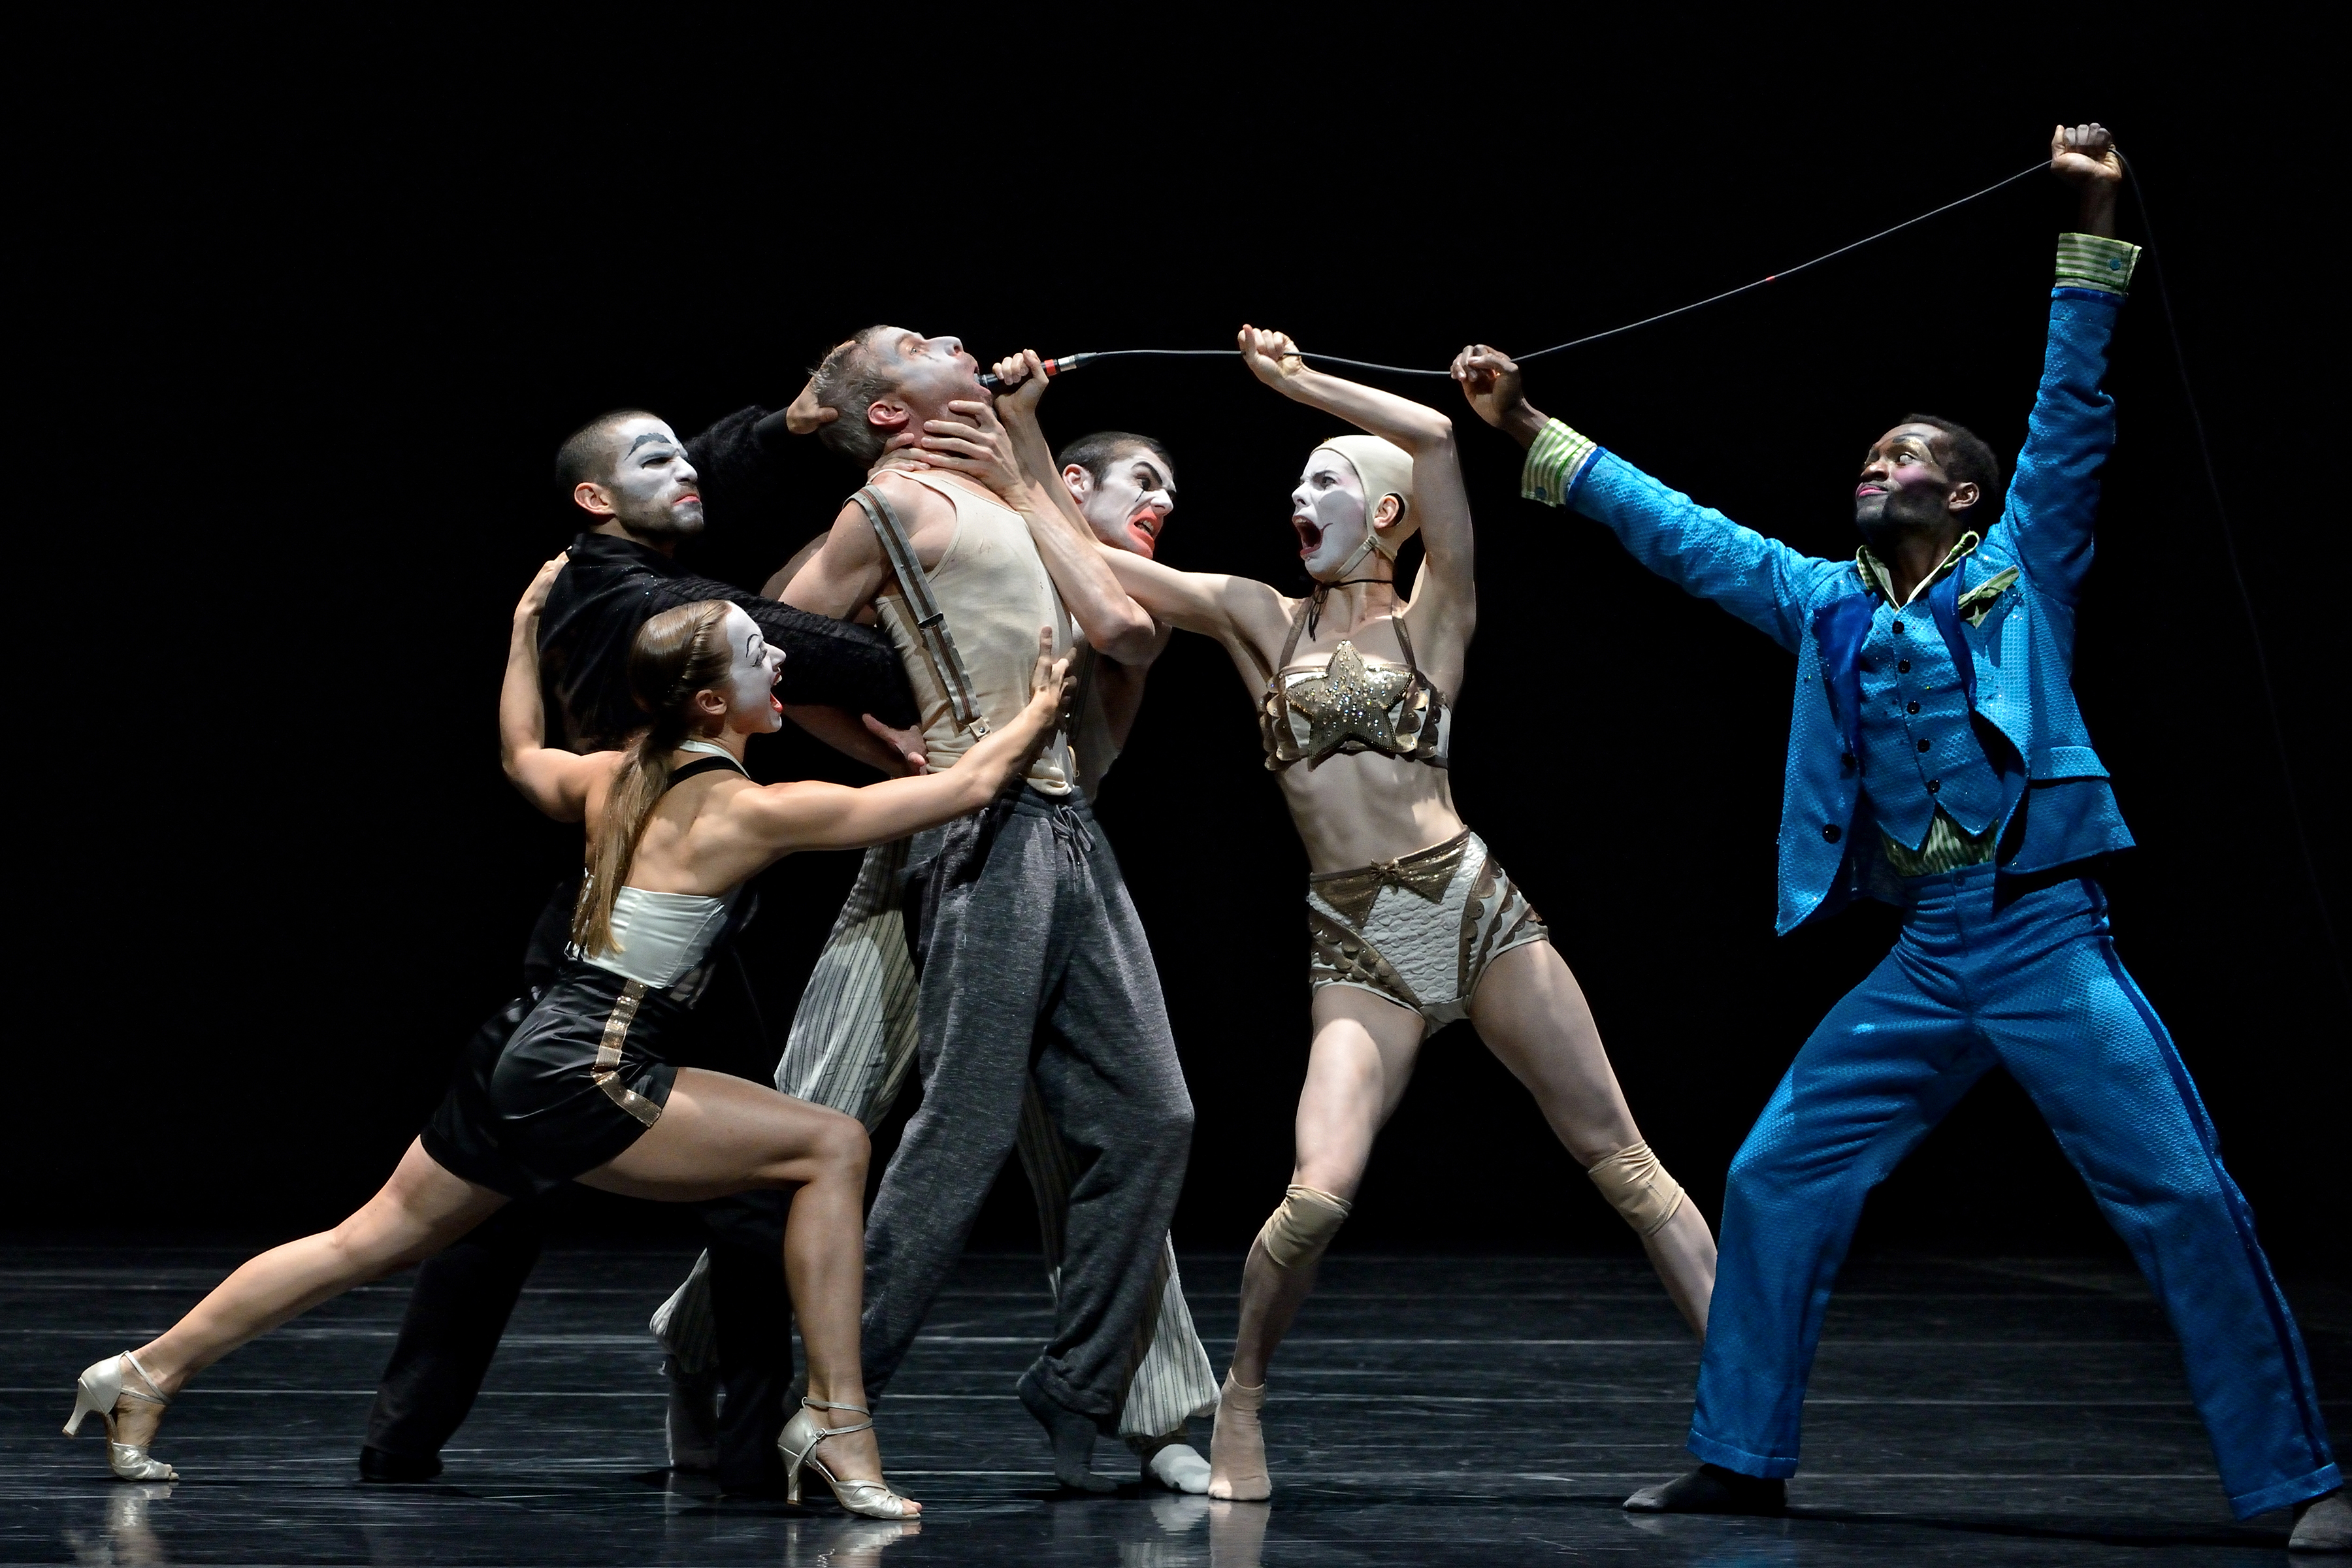 CENTRE STAGE: Great Russian Ballet touring Canada and